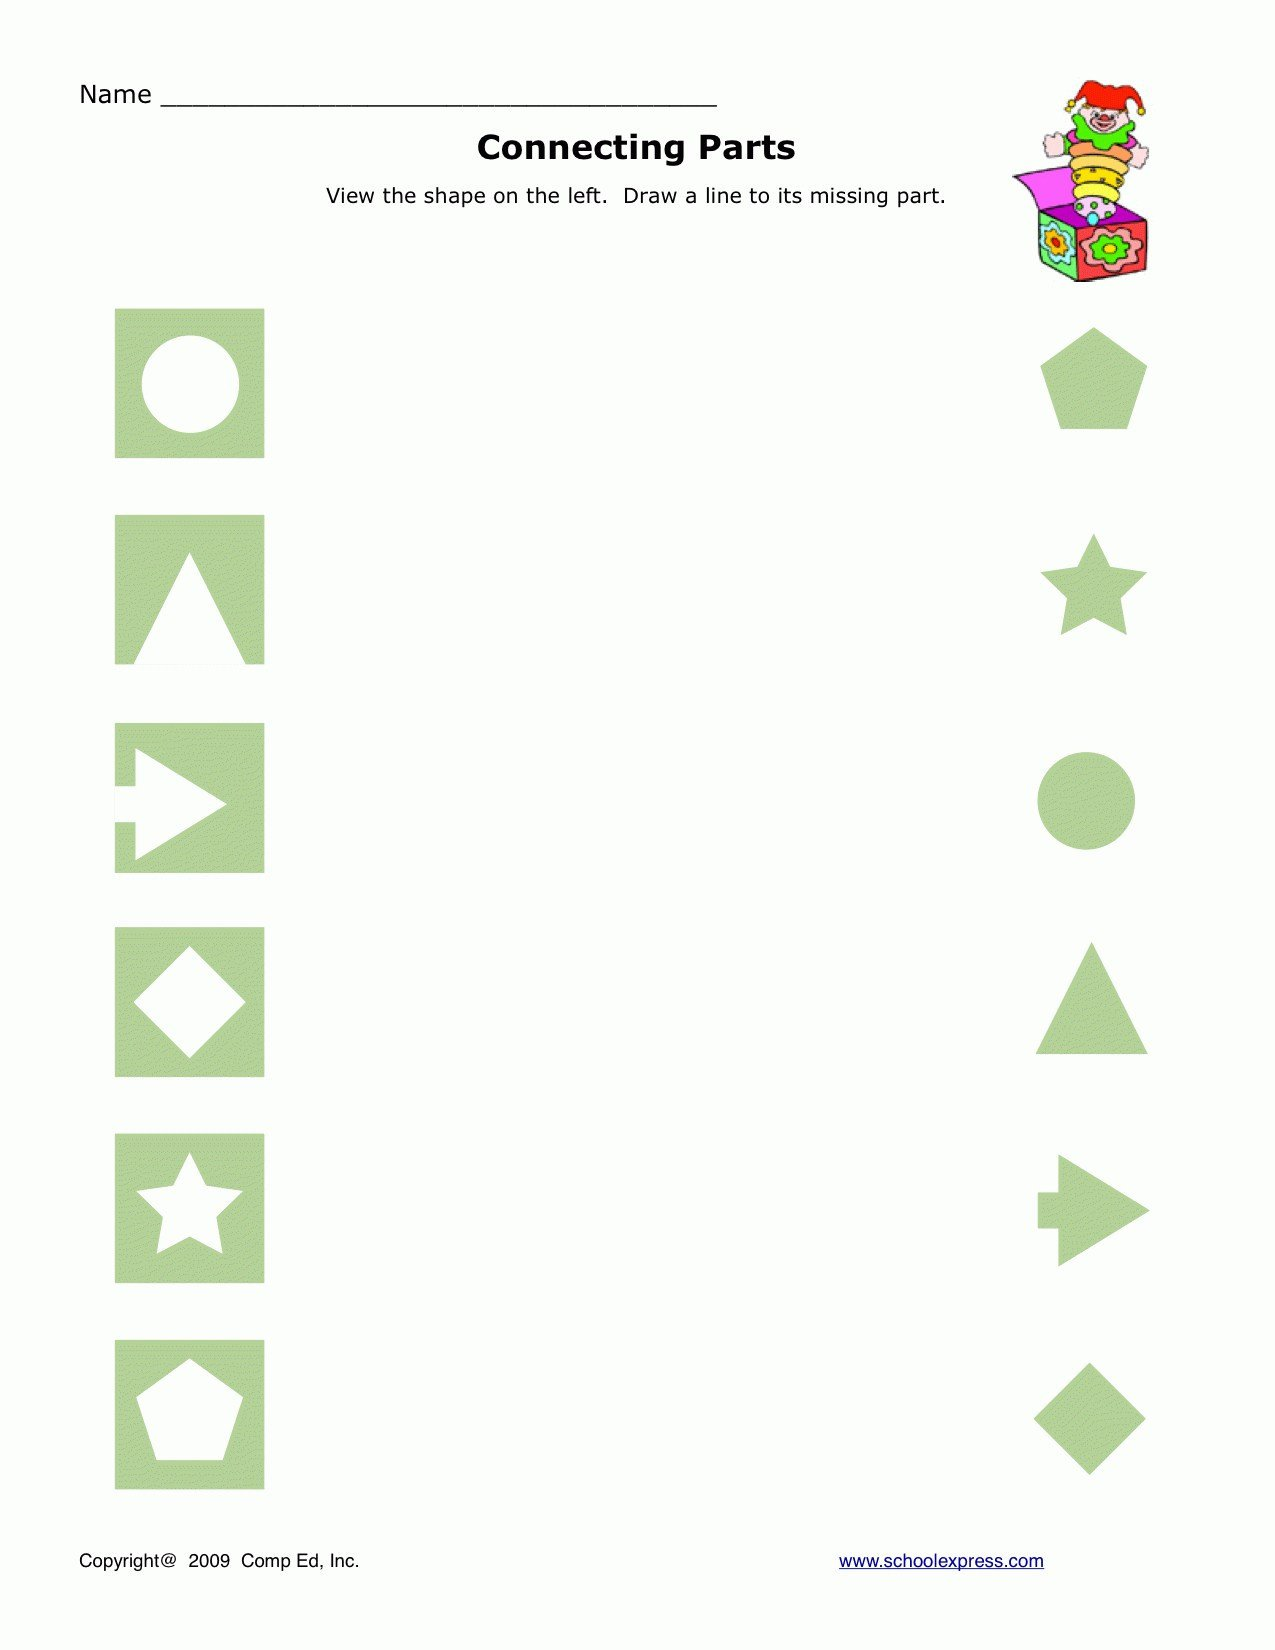 matching free printables for visual perceptual skills just tap free printable form constancy worksheets